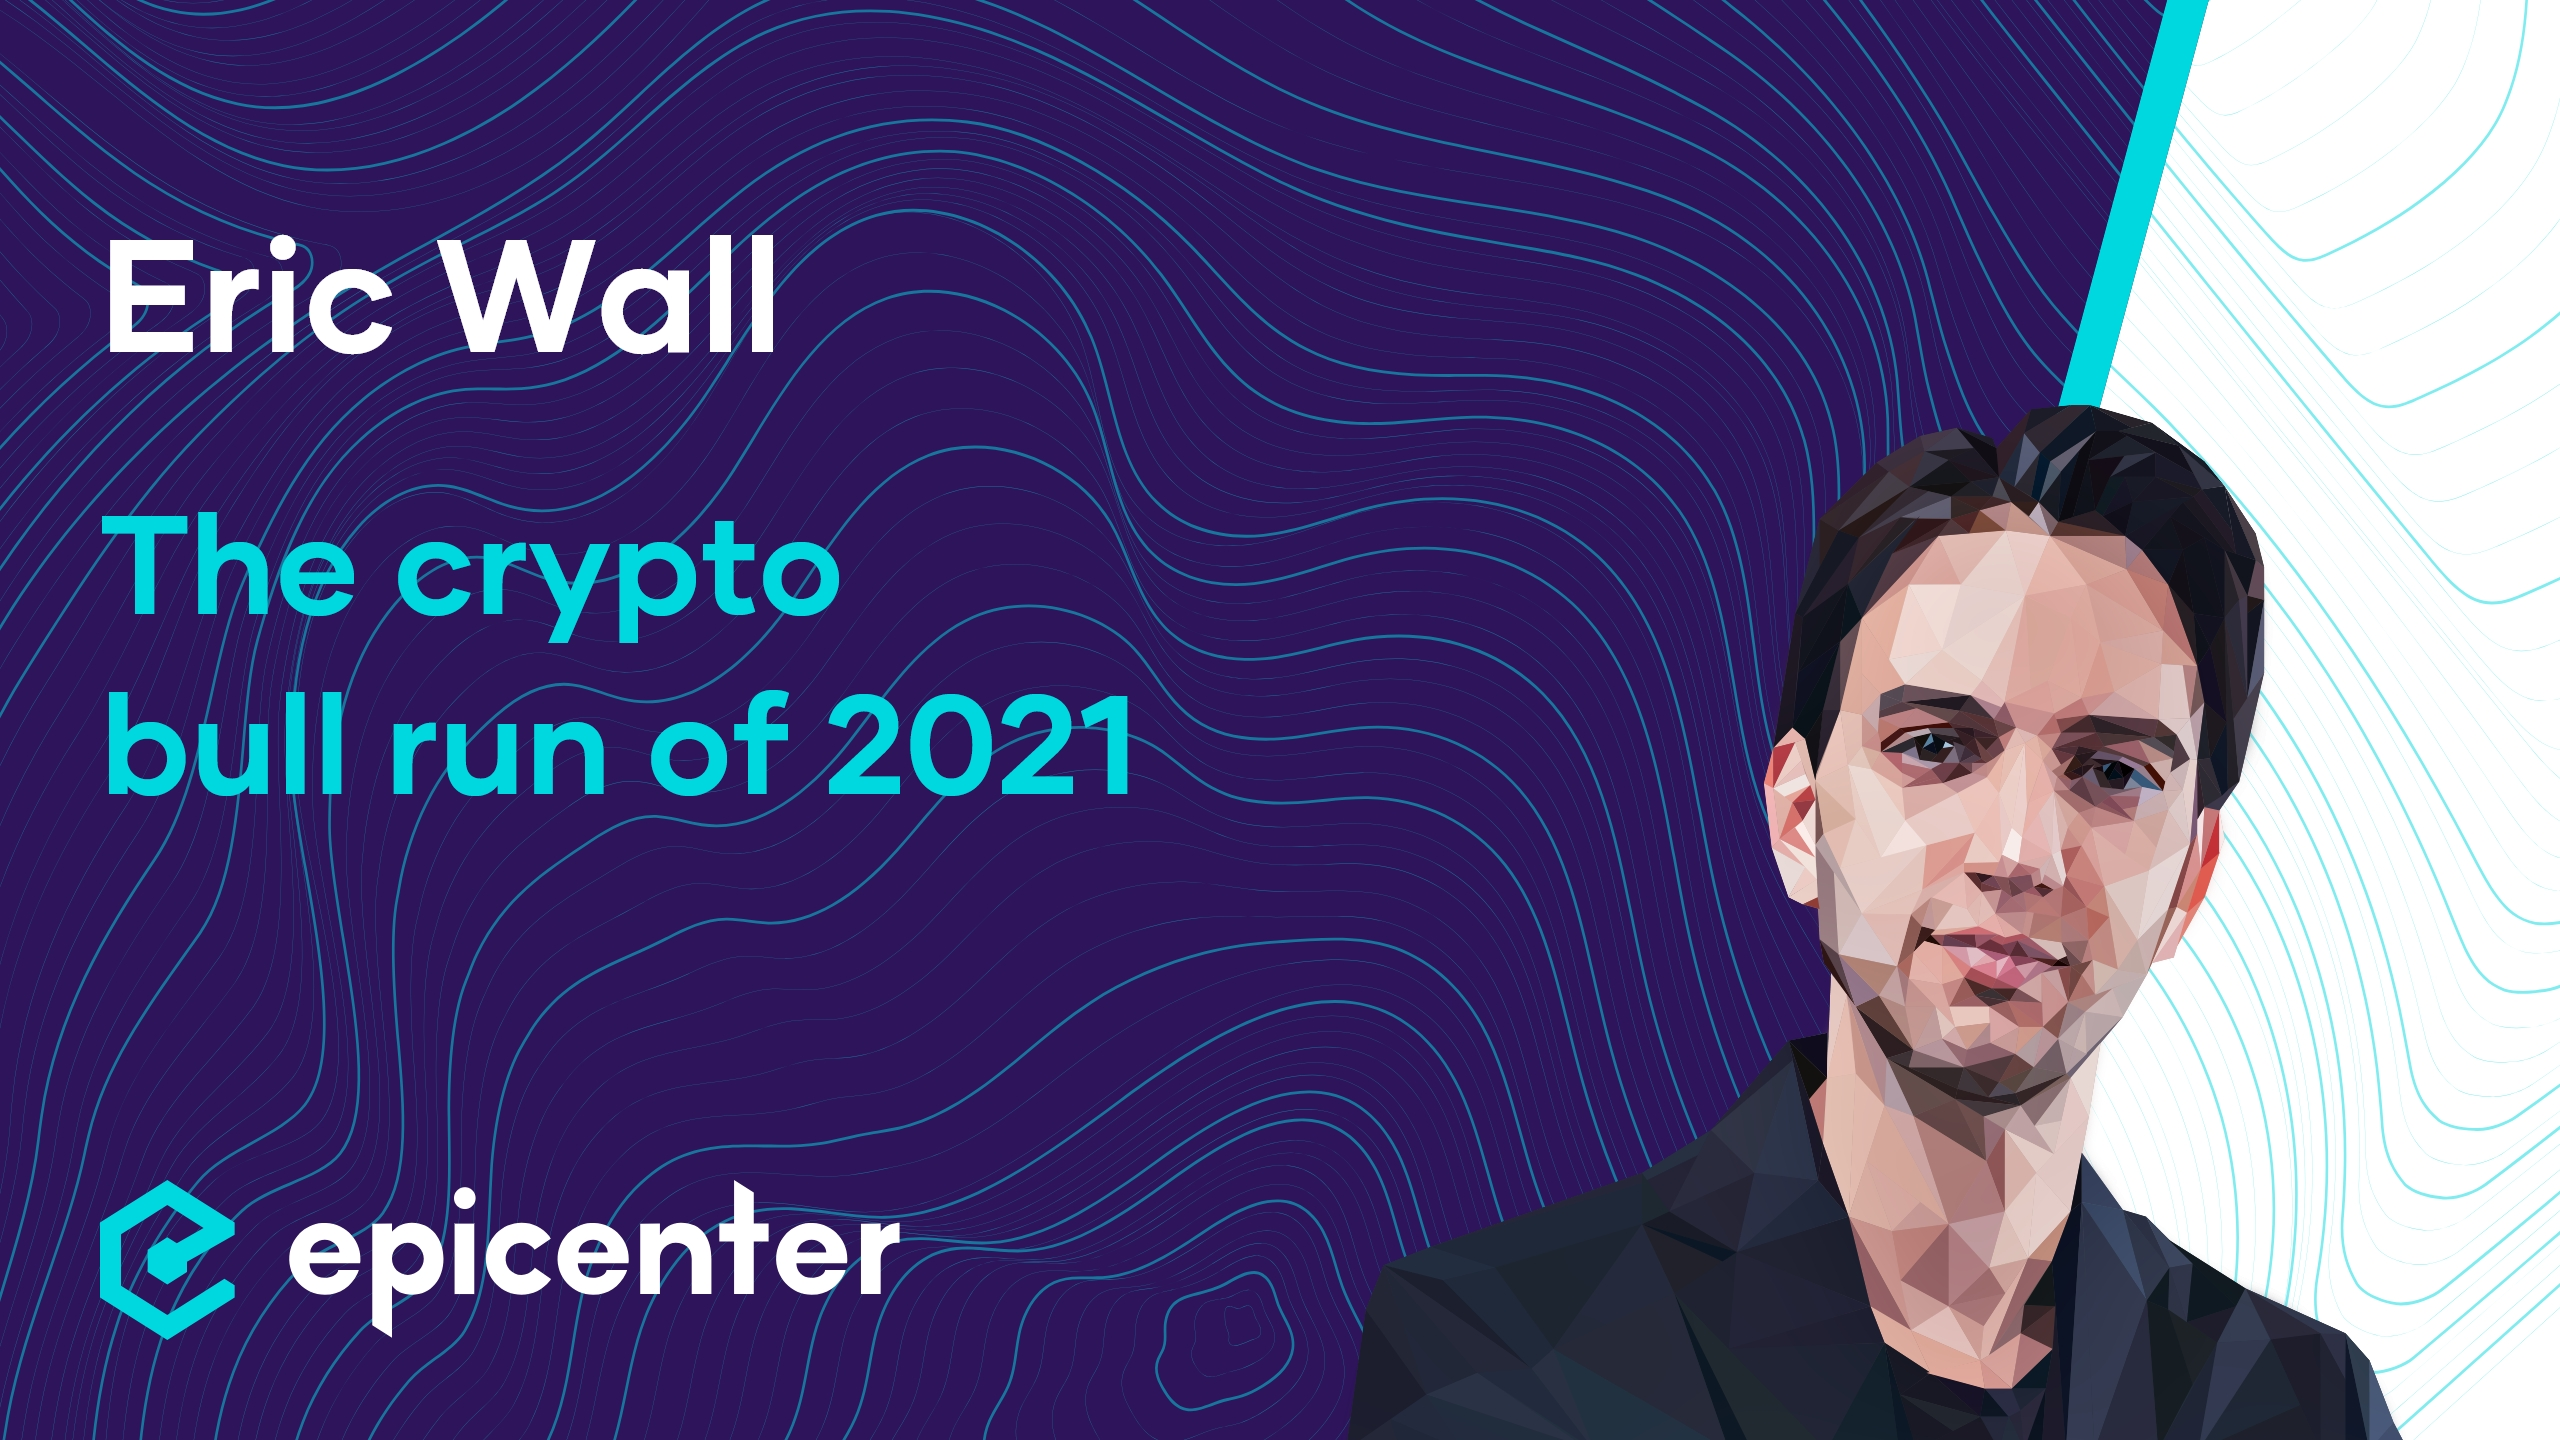 Eric Wall: Arcane Assets – The Future of Digital Investments